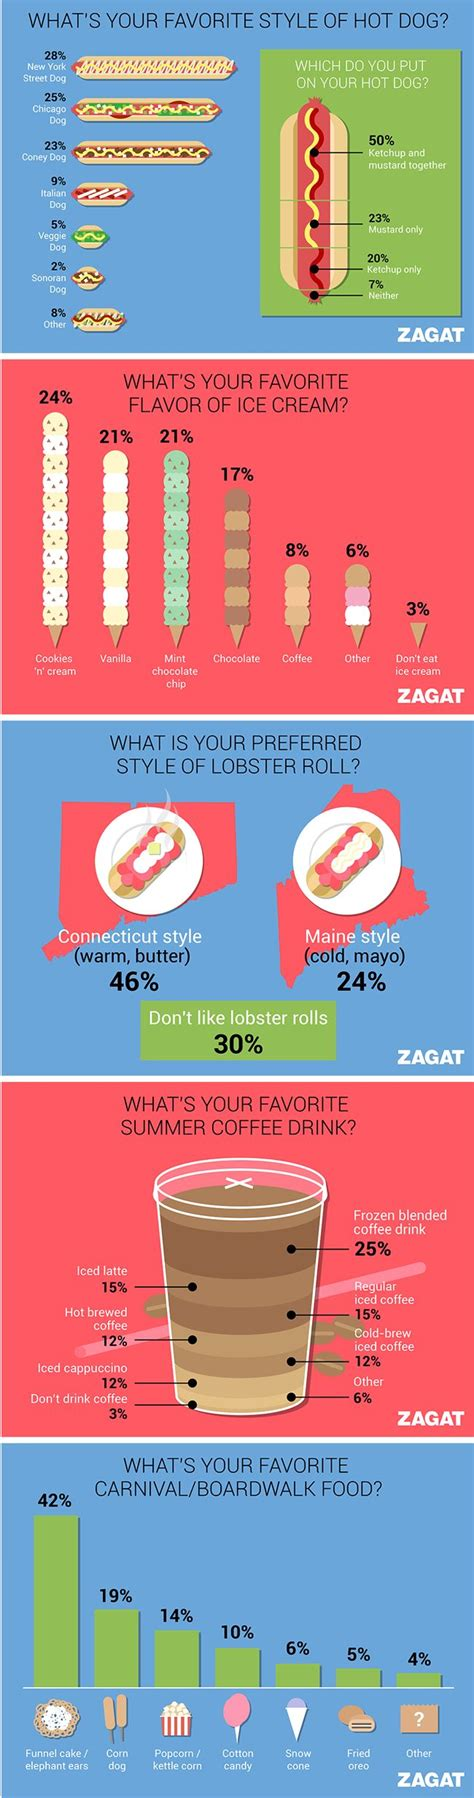 zagat summer food infographic design creative infographic